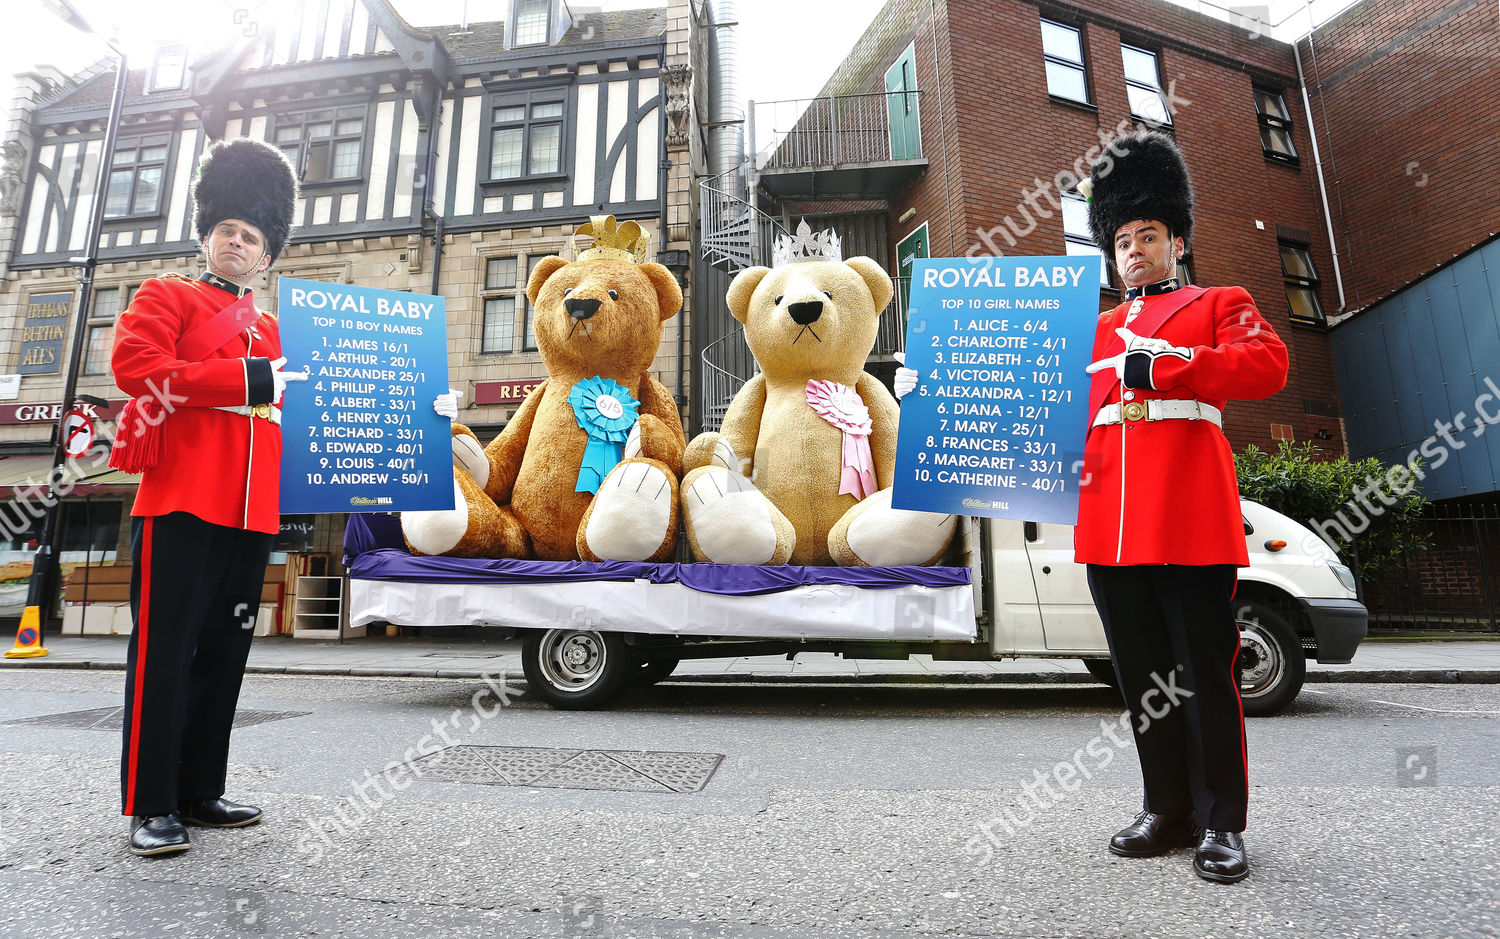 Two giant 3metre high teddy bears which Editorial Stock